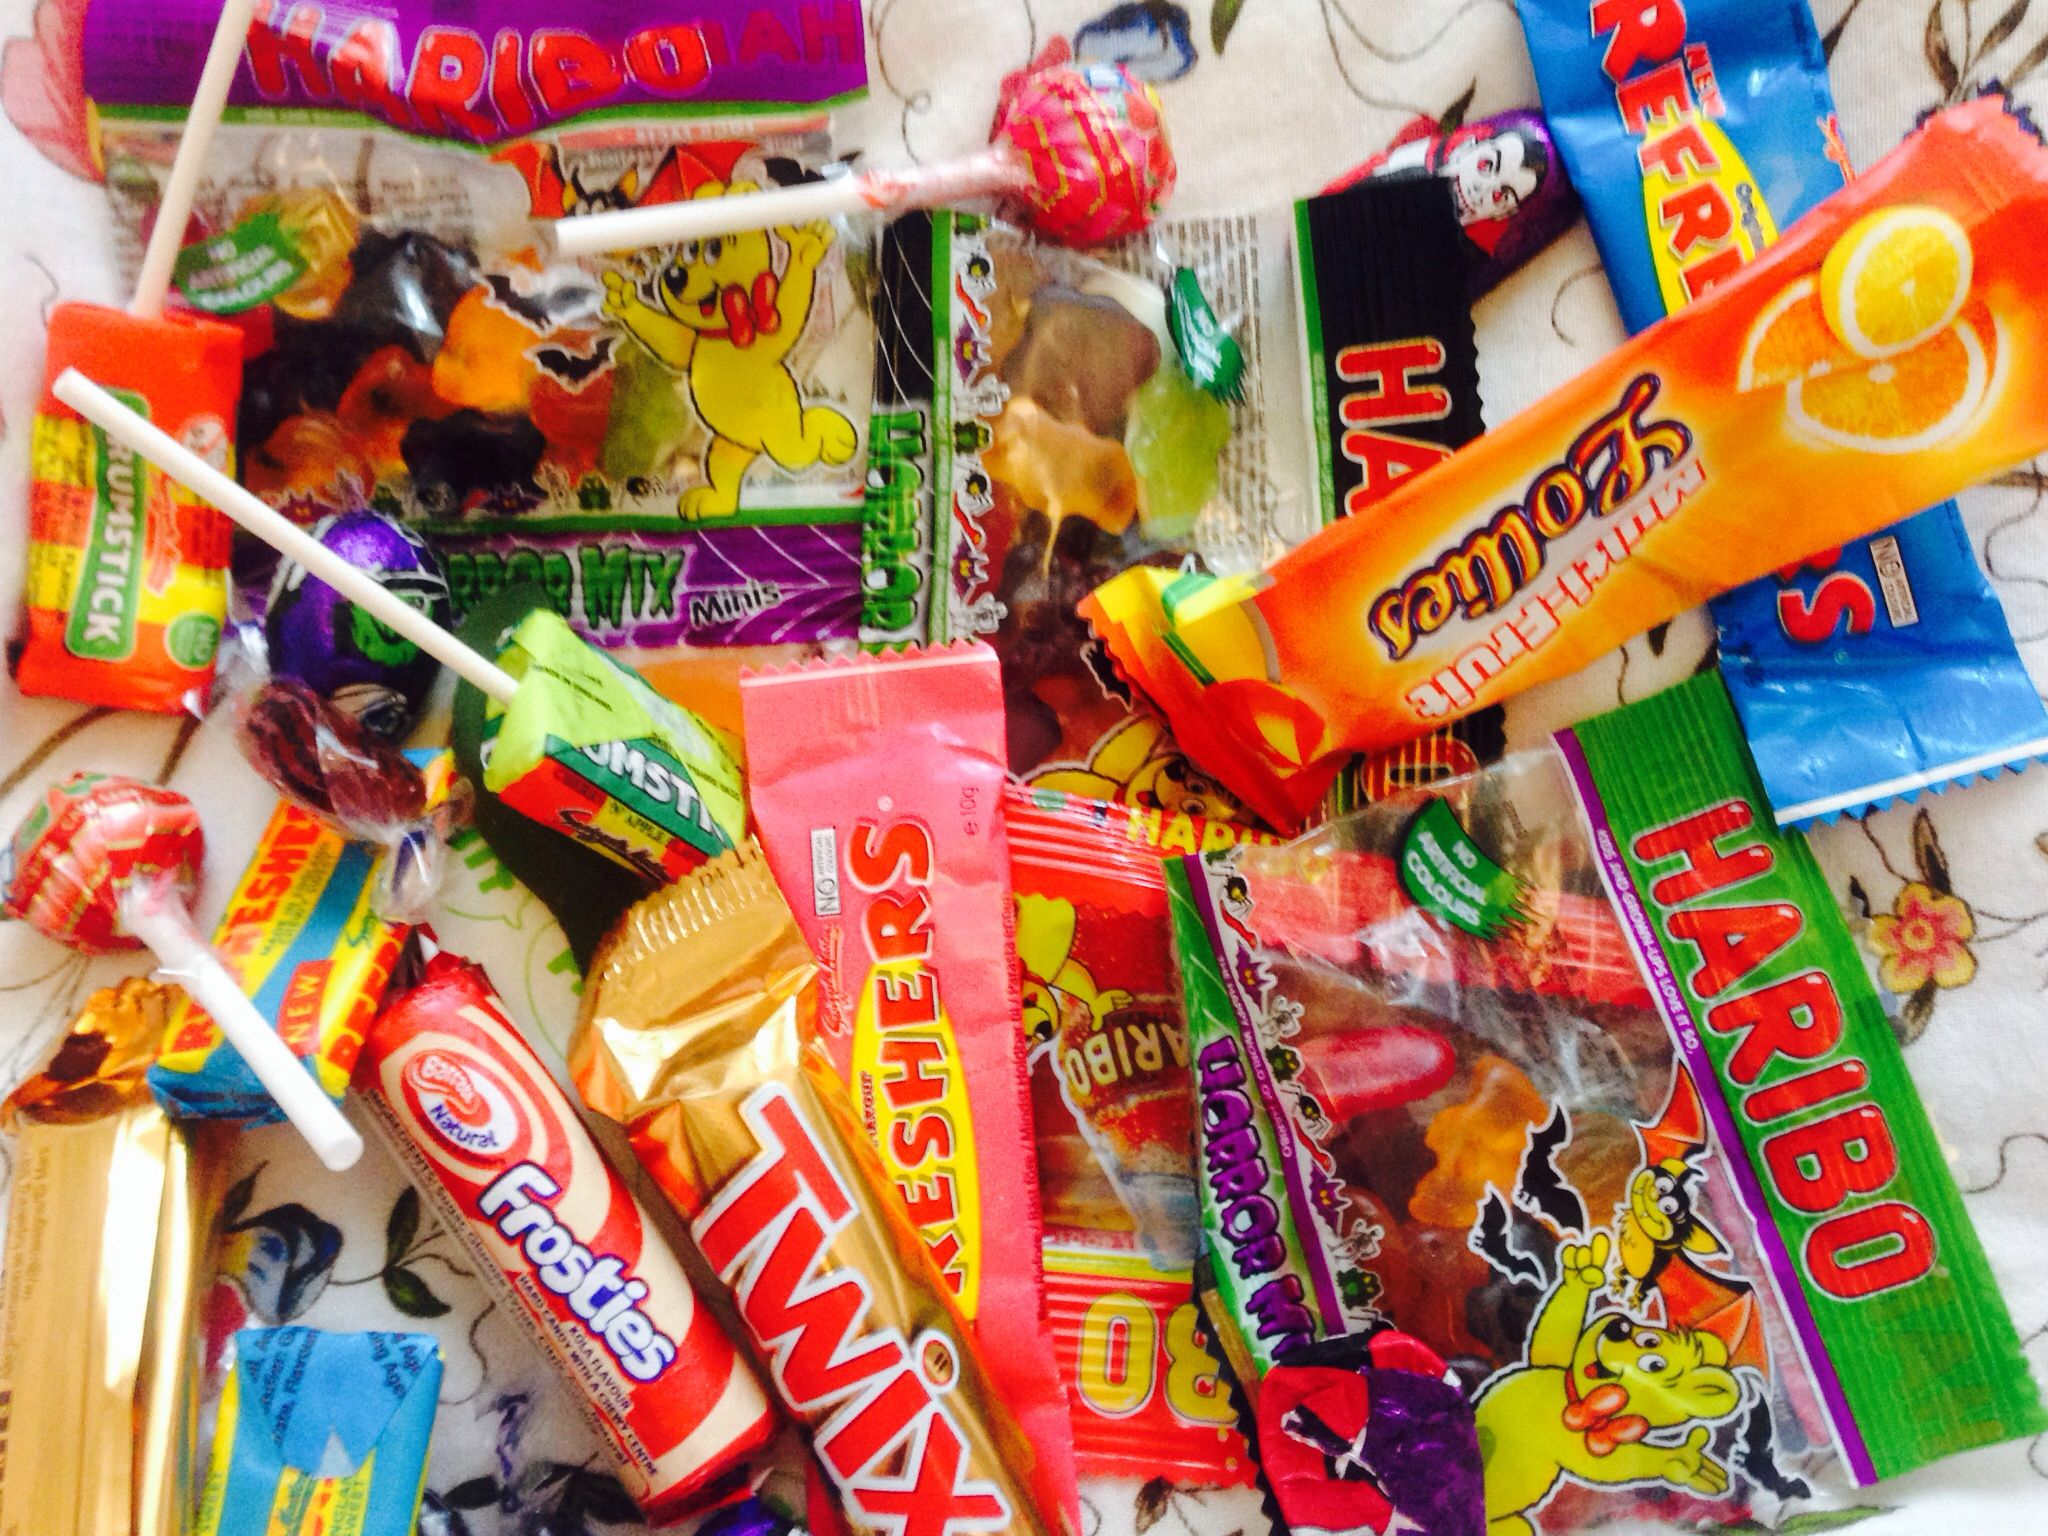 Sweeties Weird food, Sweet candy, Candy store